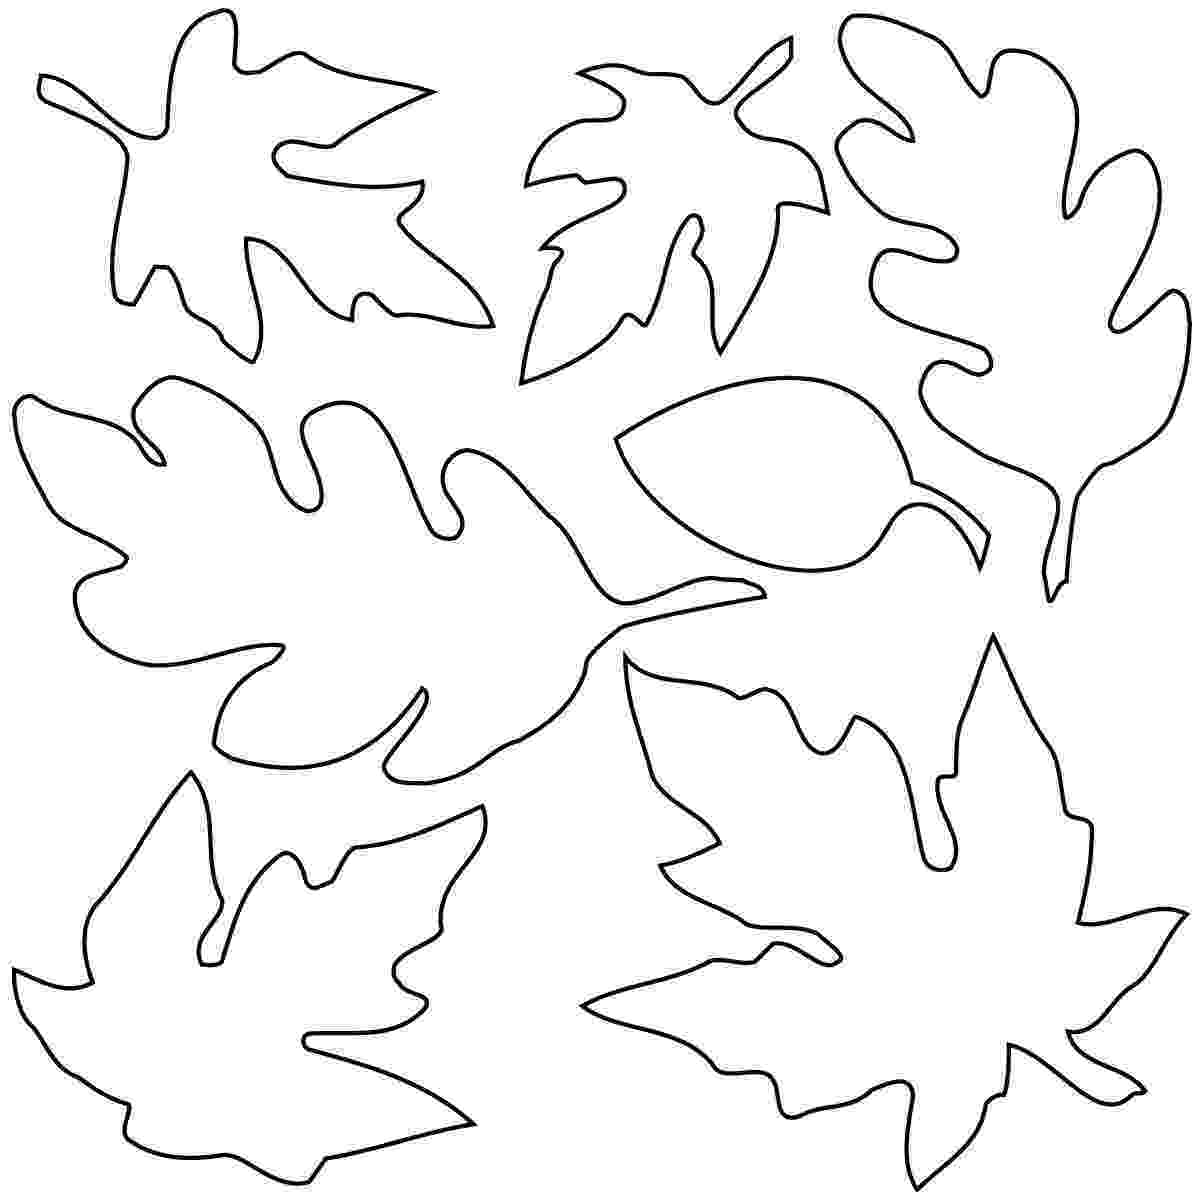 leaves coloring page clip art fall leaves coloring page abcteach leaves coloring page